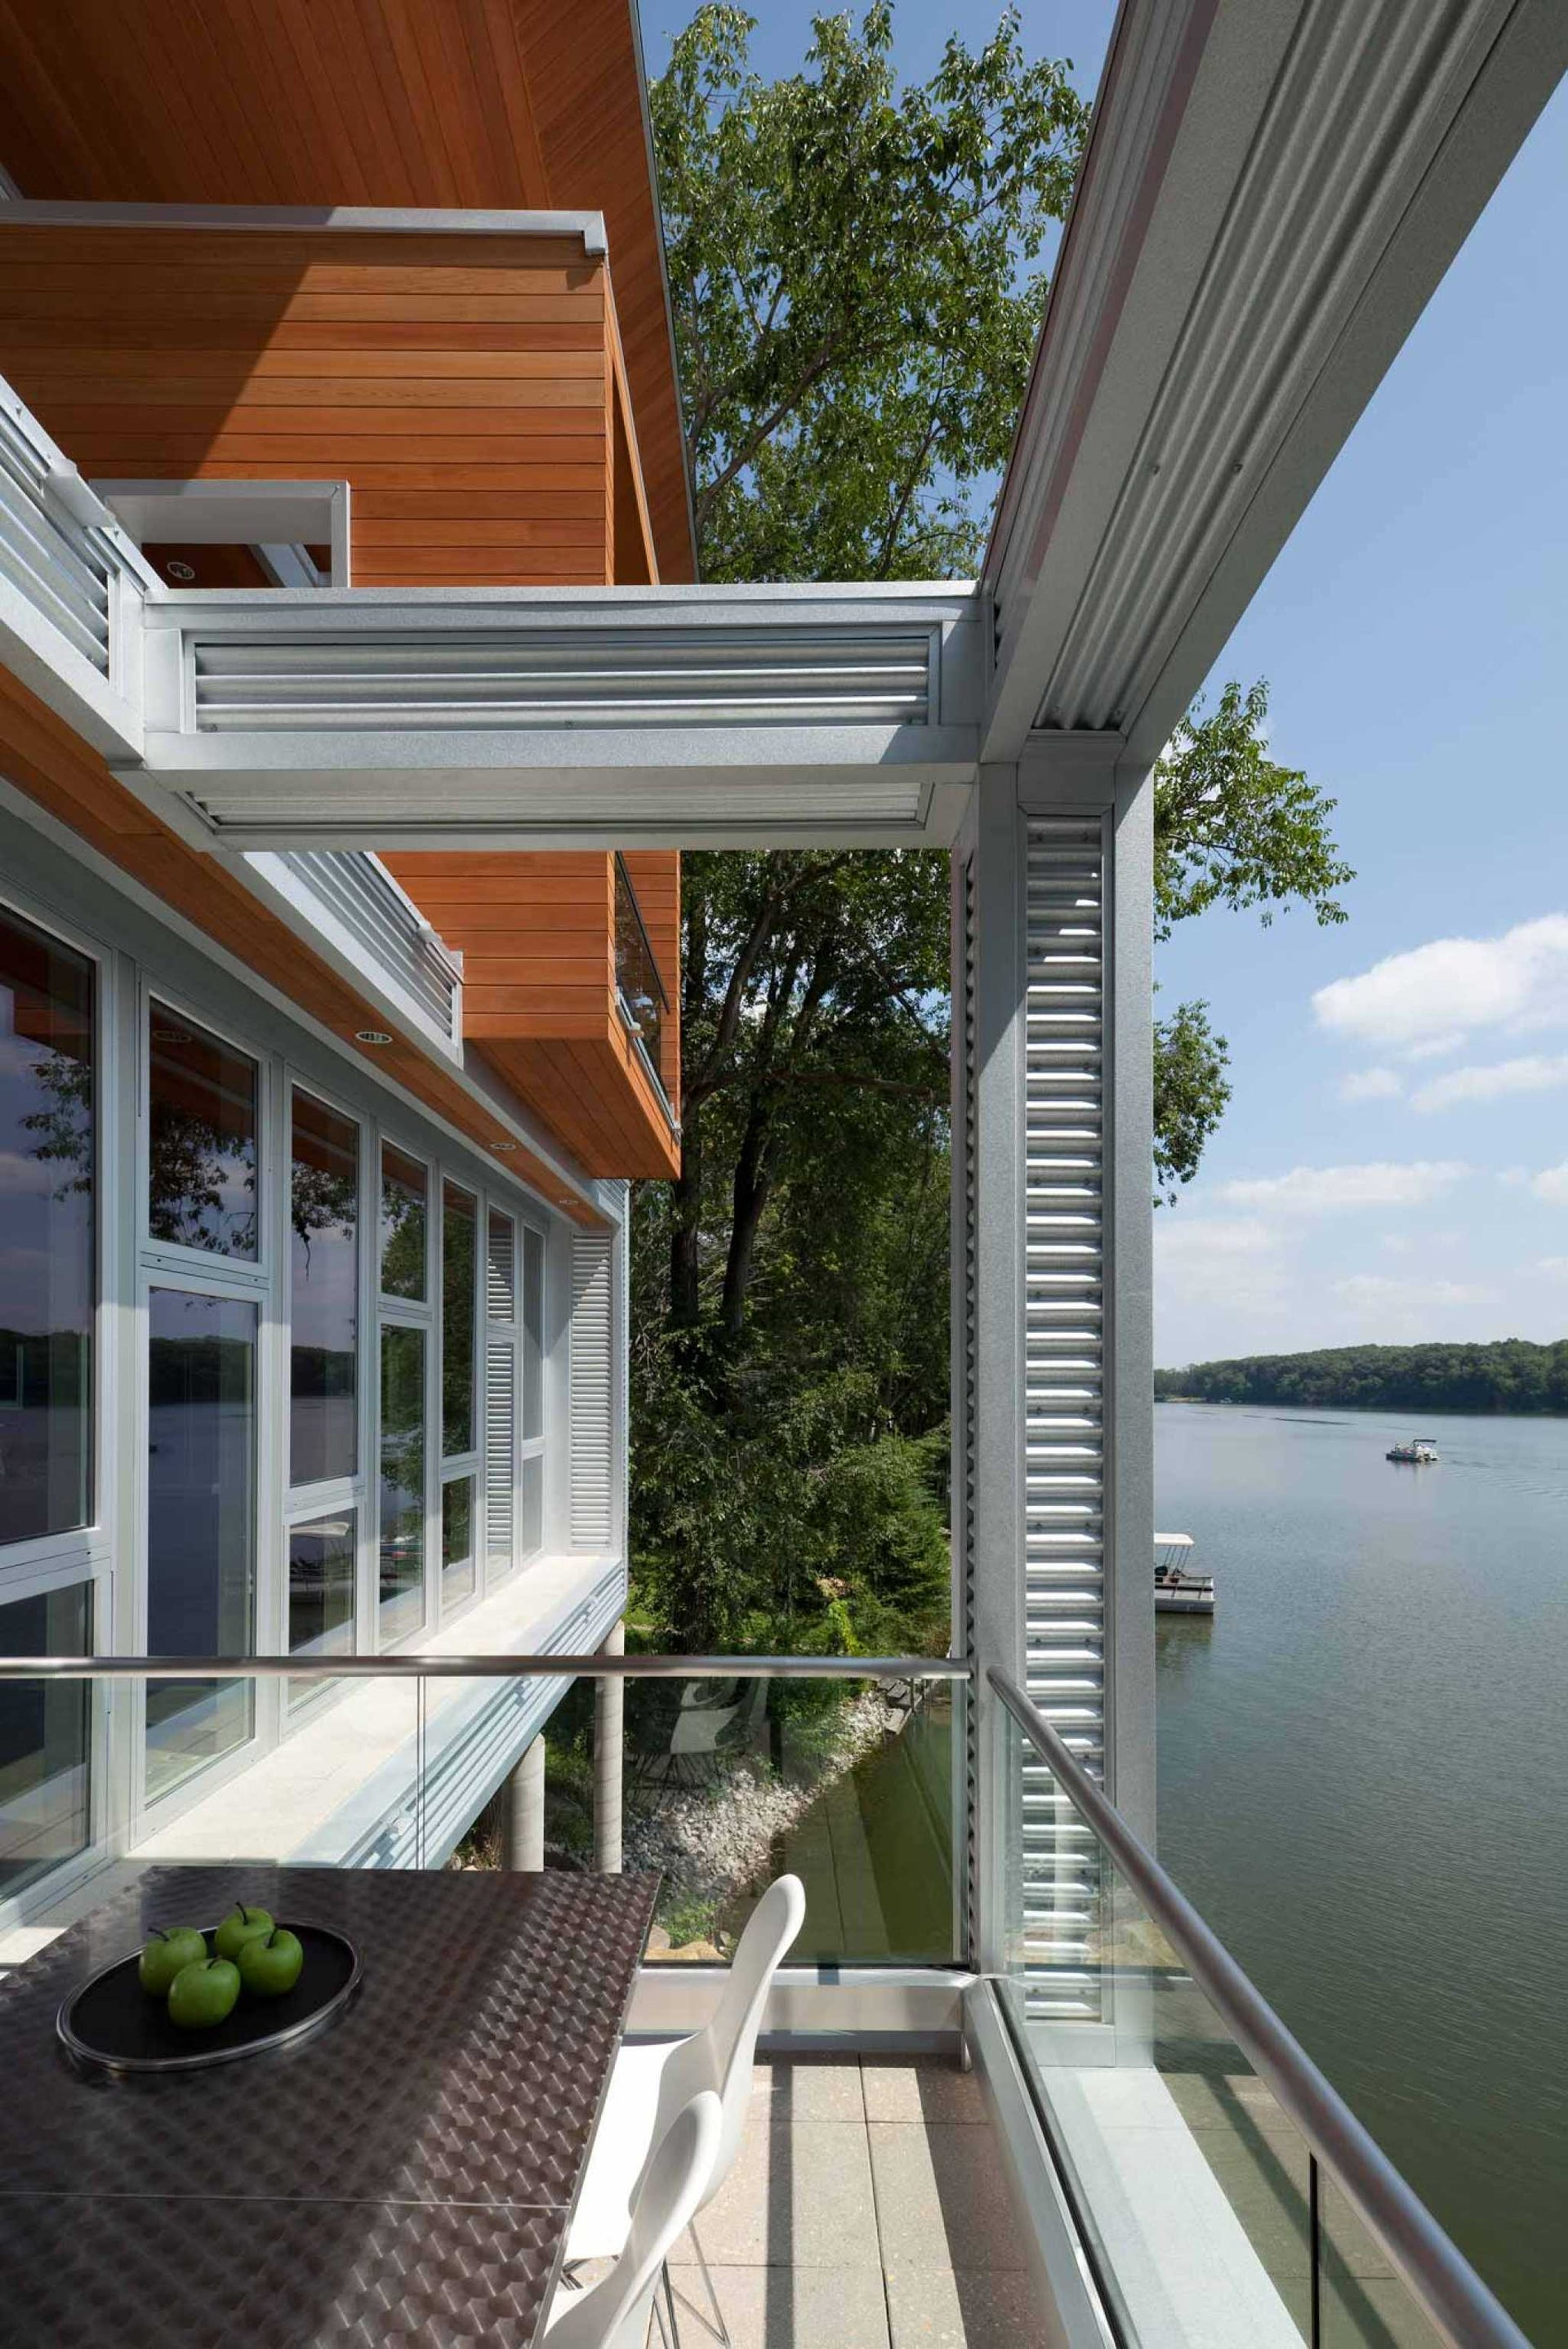 Cabin 717, Iowa. Residential Architecture by Akar Architecture, Iowa City, Iowa.